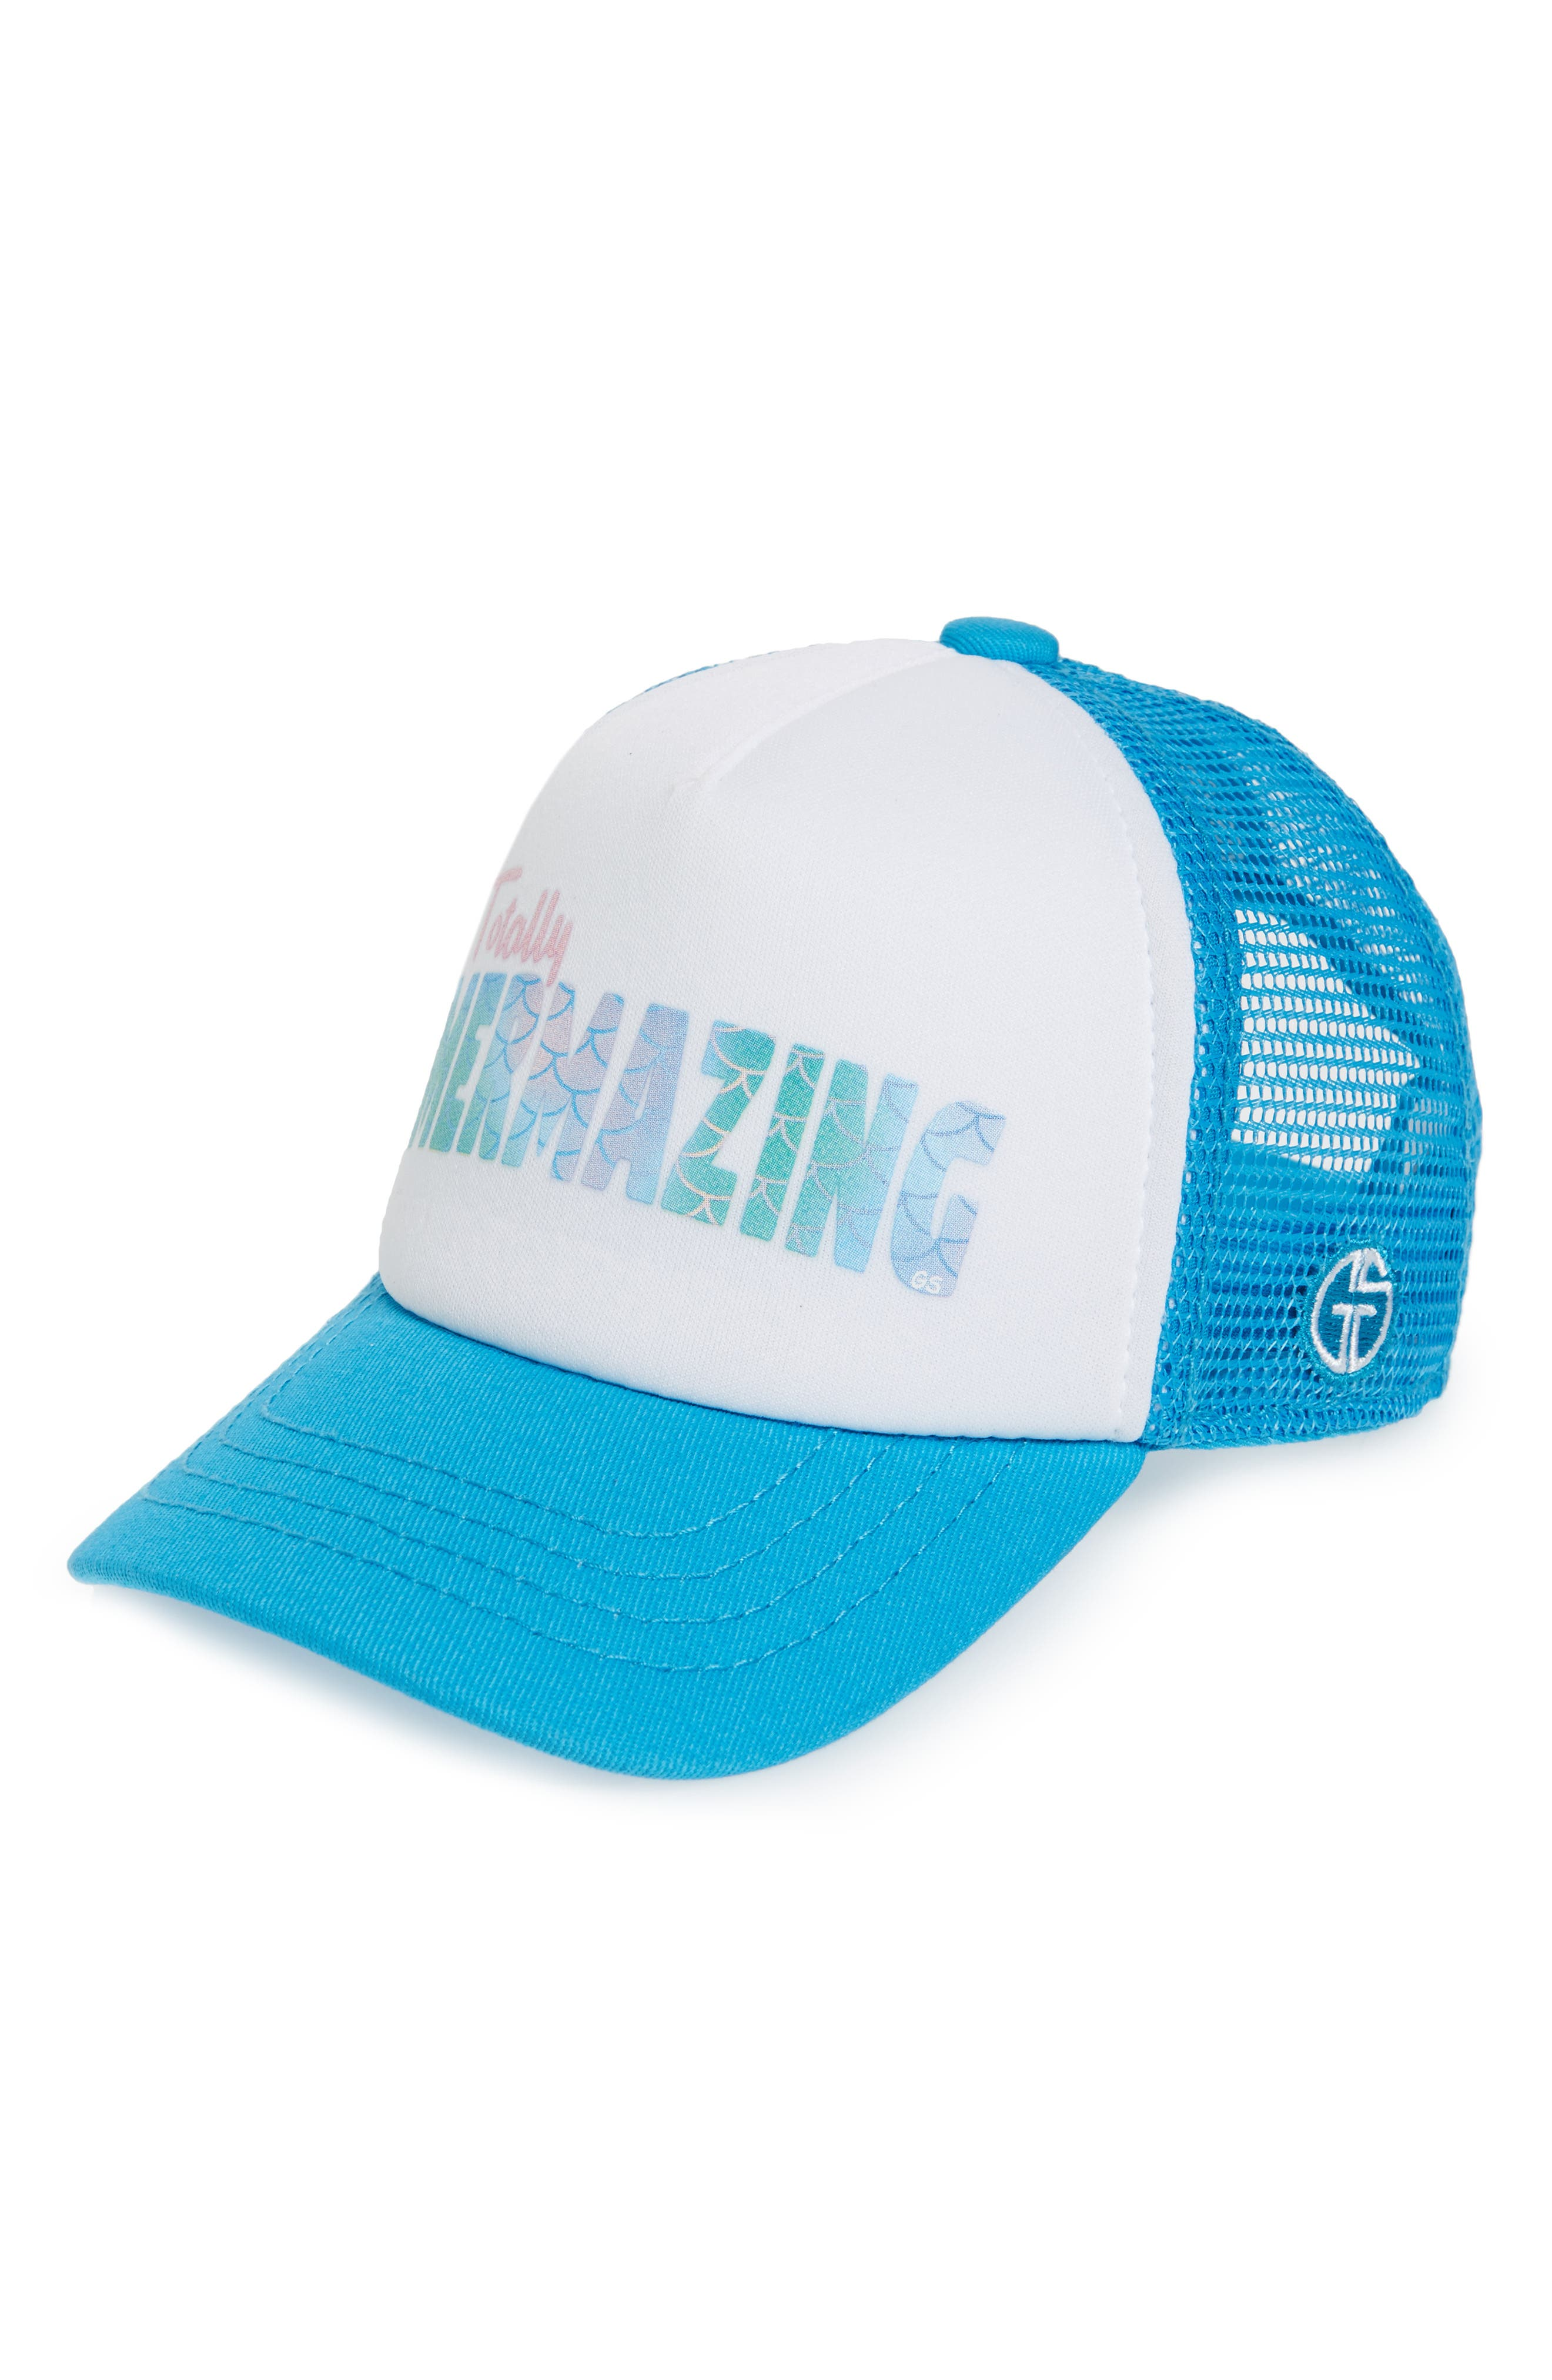 Totally Mermazing Trucker Hat,                         Main,                         color, Teal/ White